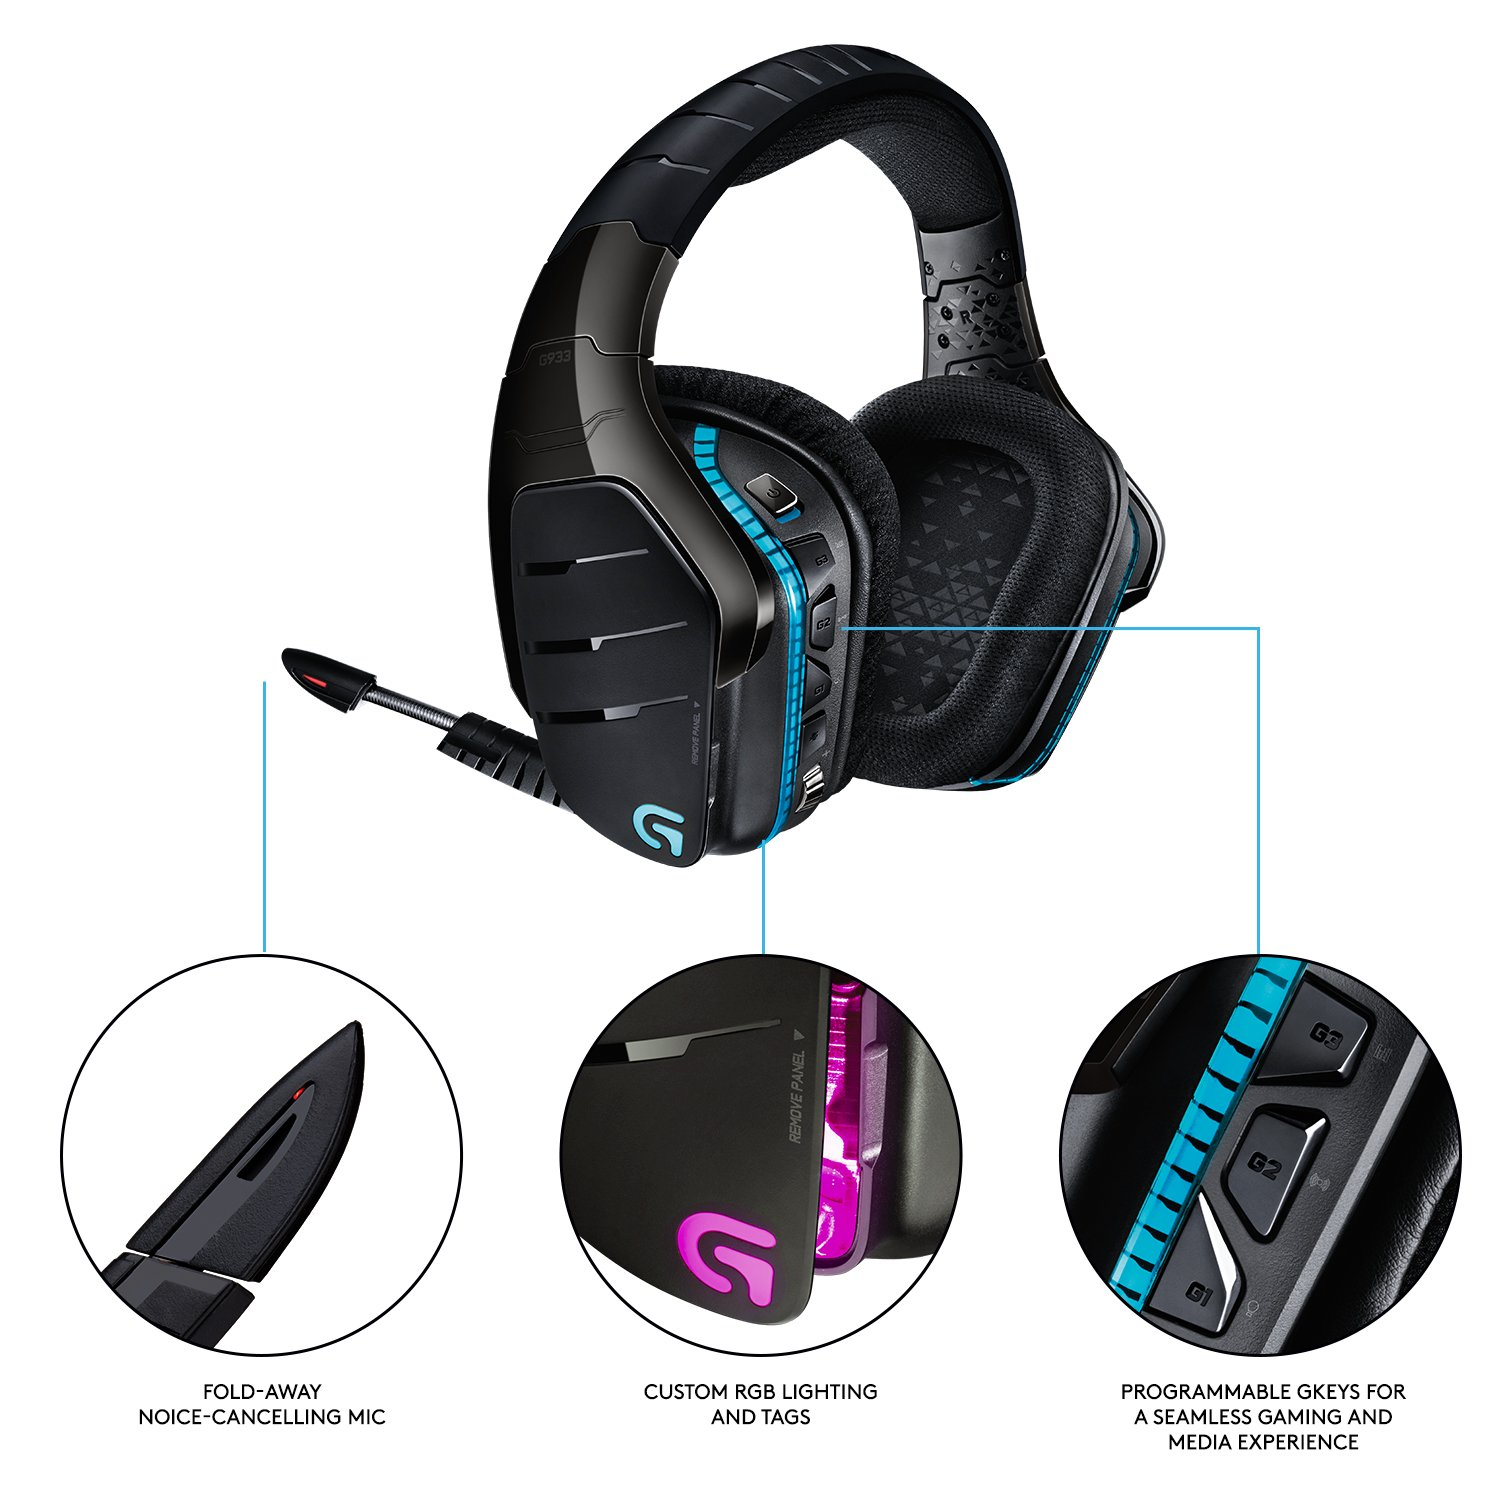 Amazon.com: Logitech G933 Artemis Spectrum – Wireless RGB 7.1 Dolby ...